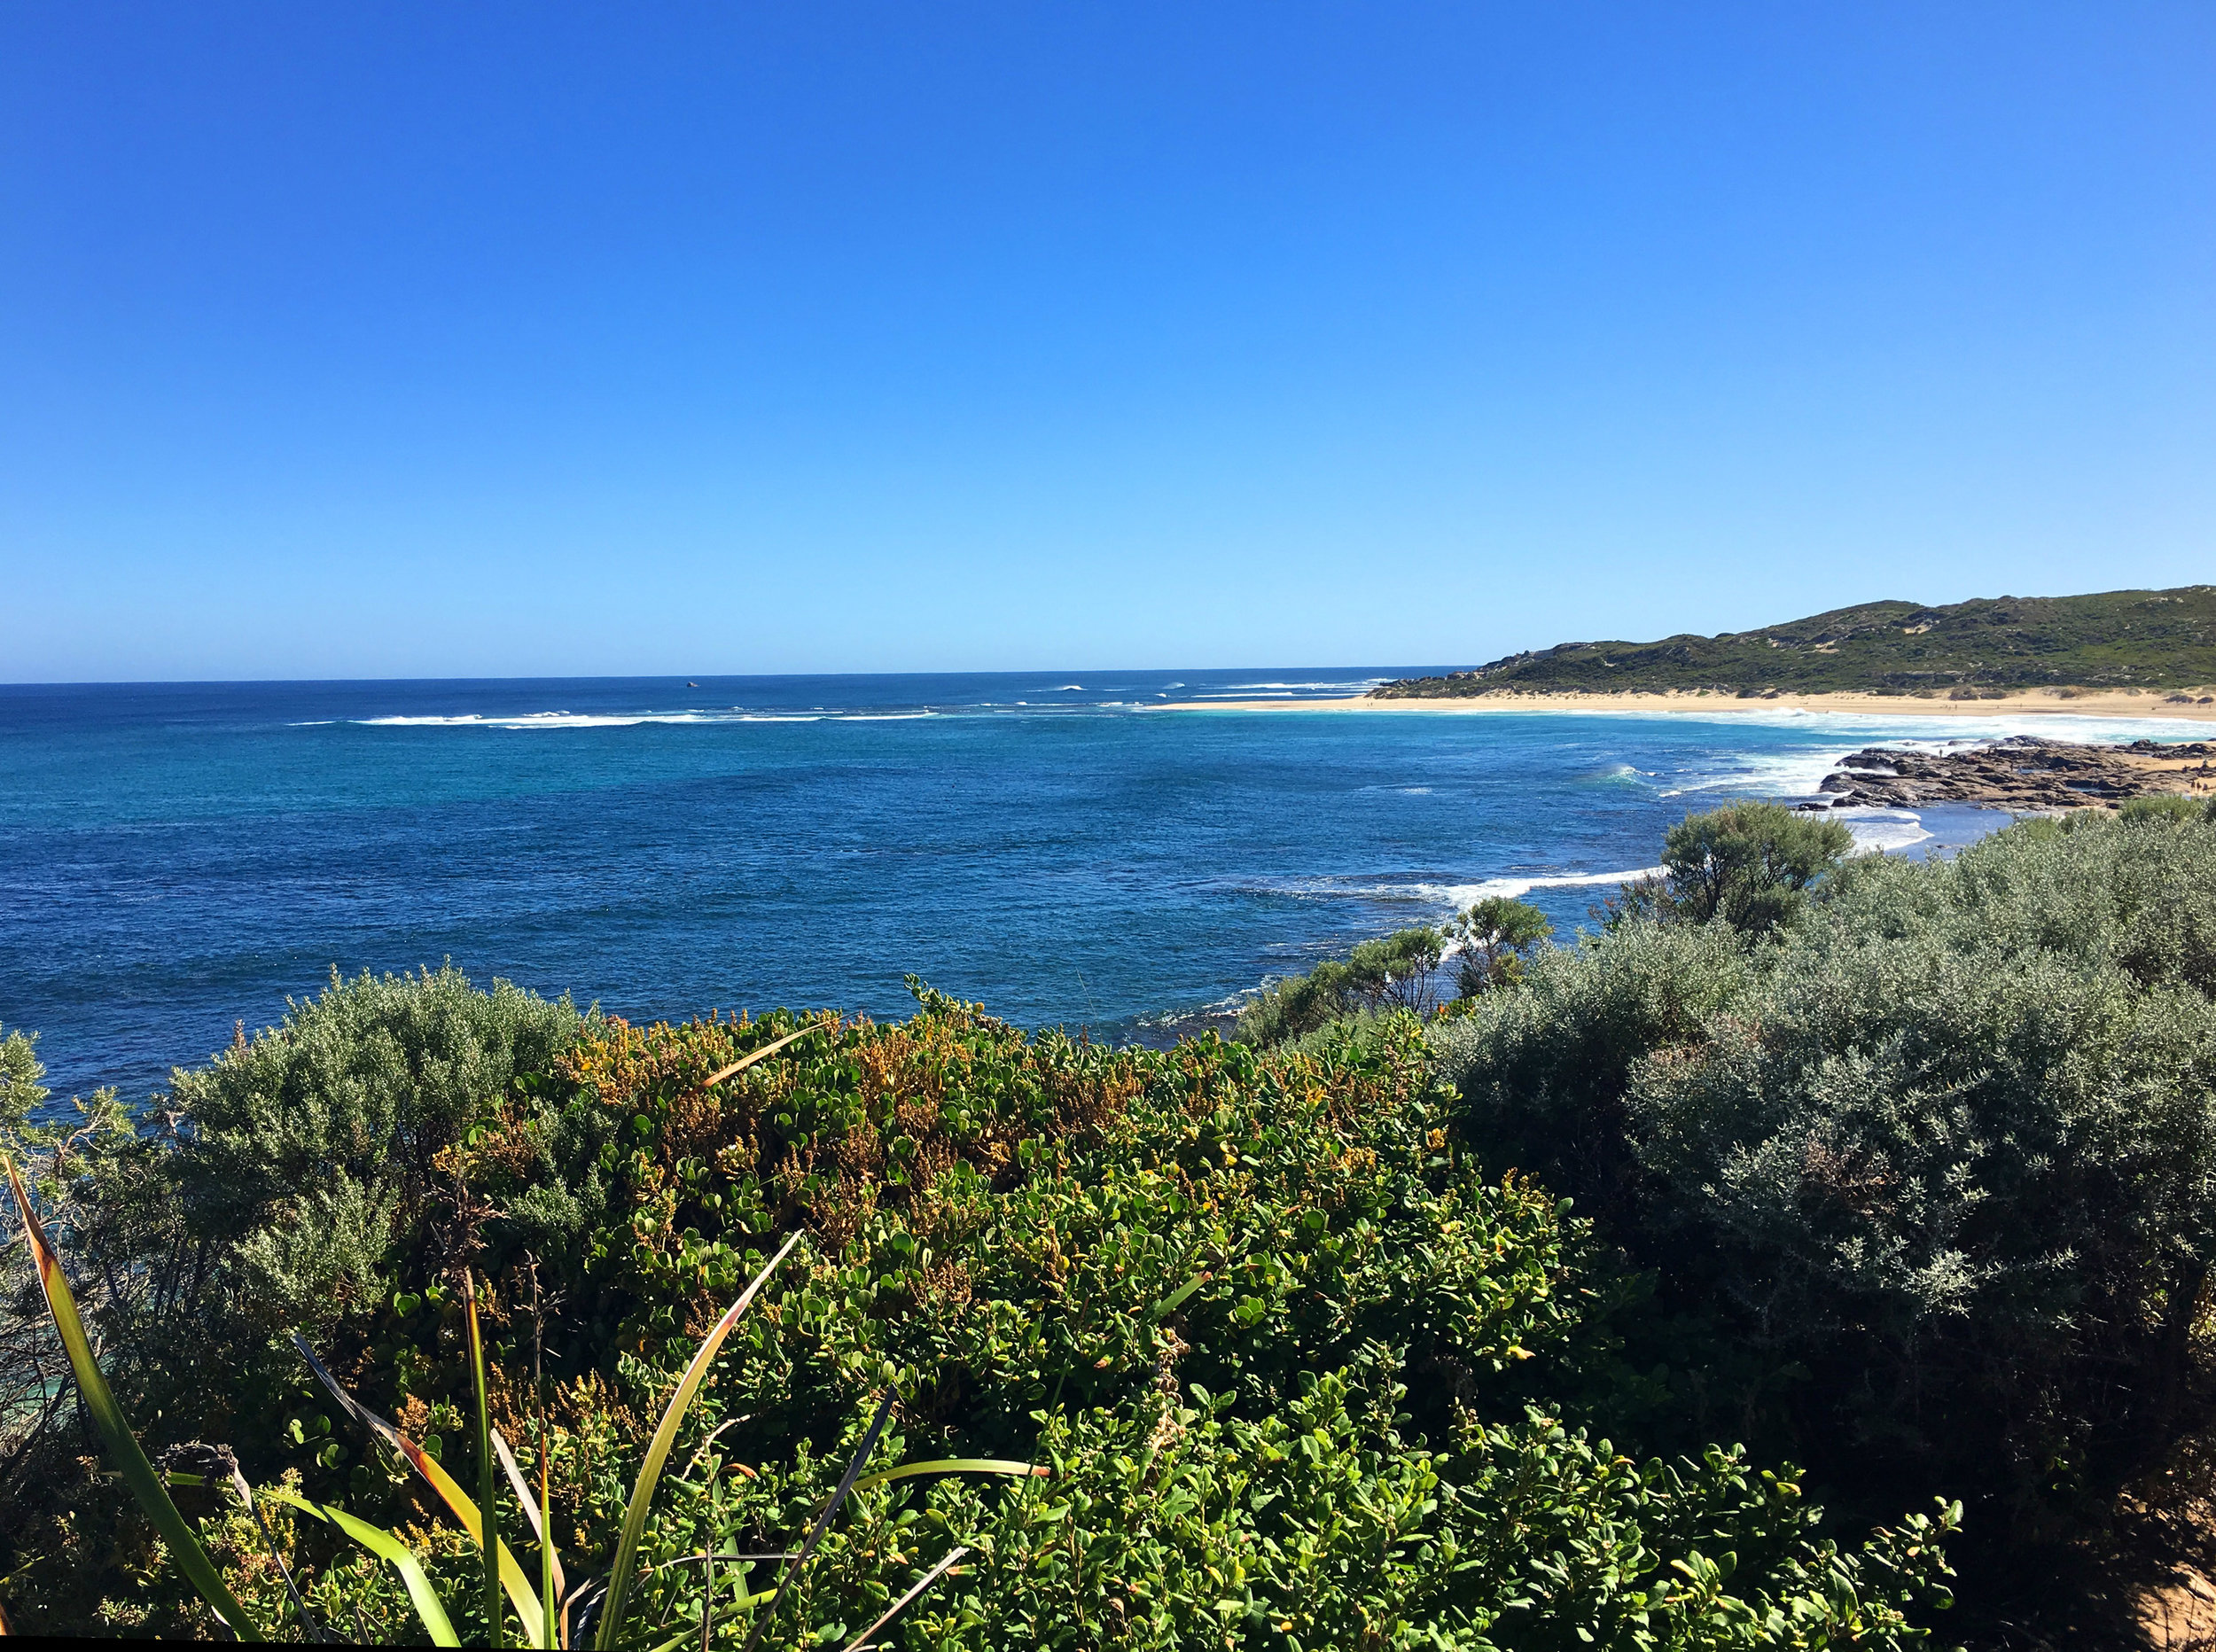 Beach south of Margaret River's entrance to the Indian Ocean, Western Australia (photograph J. Cook)